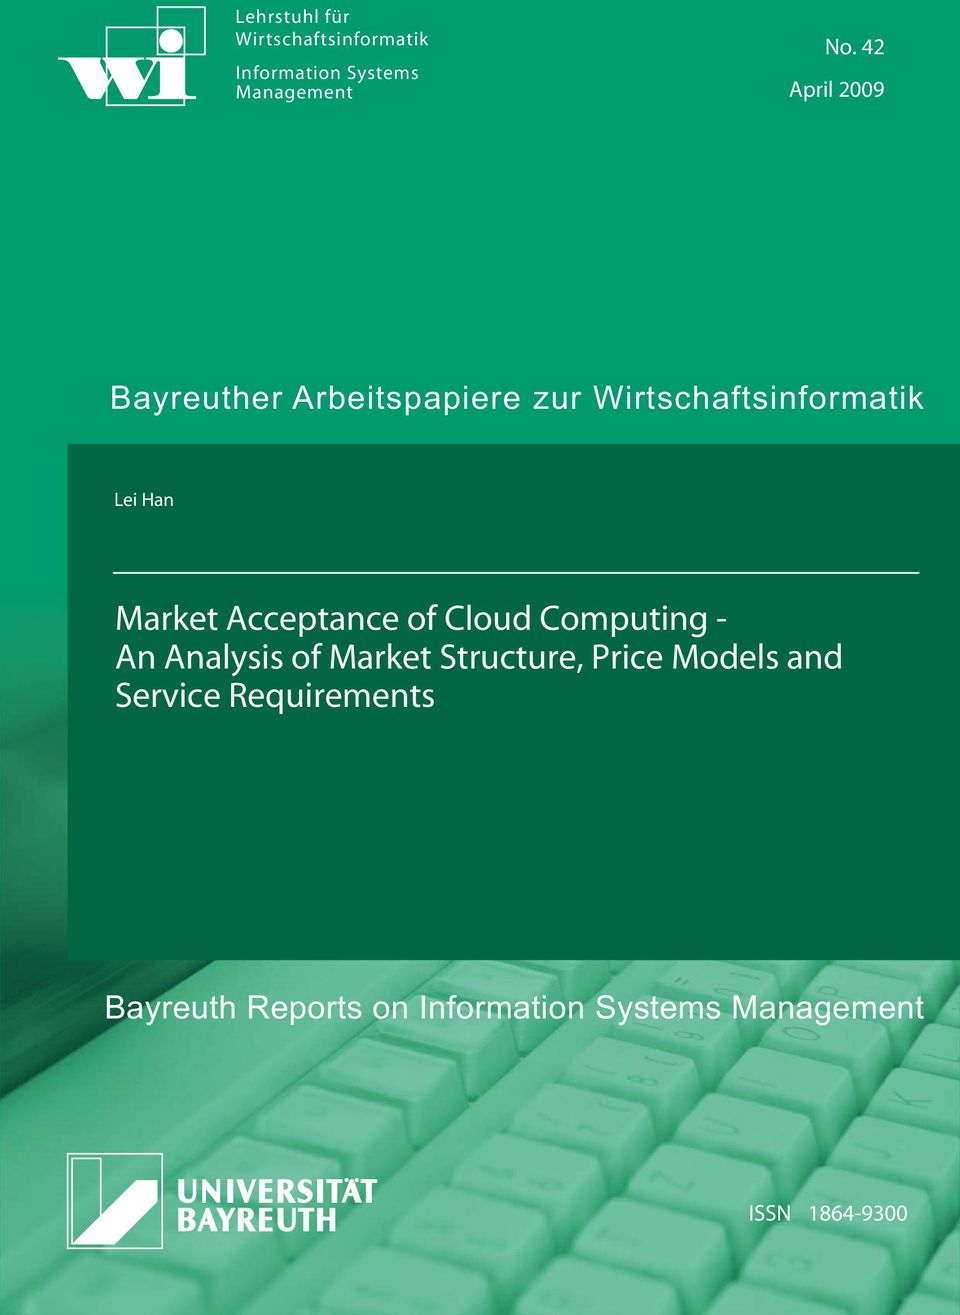 Market Acceptance of Cloud Computing - An Analysis of Market Structure, Price